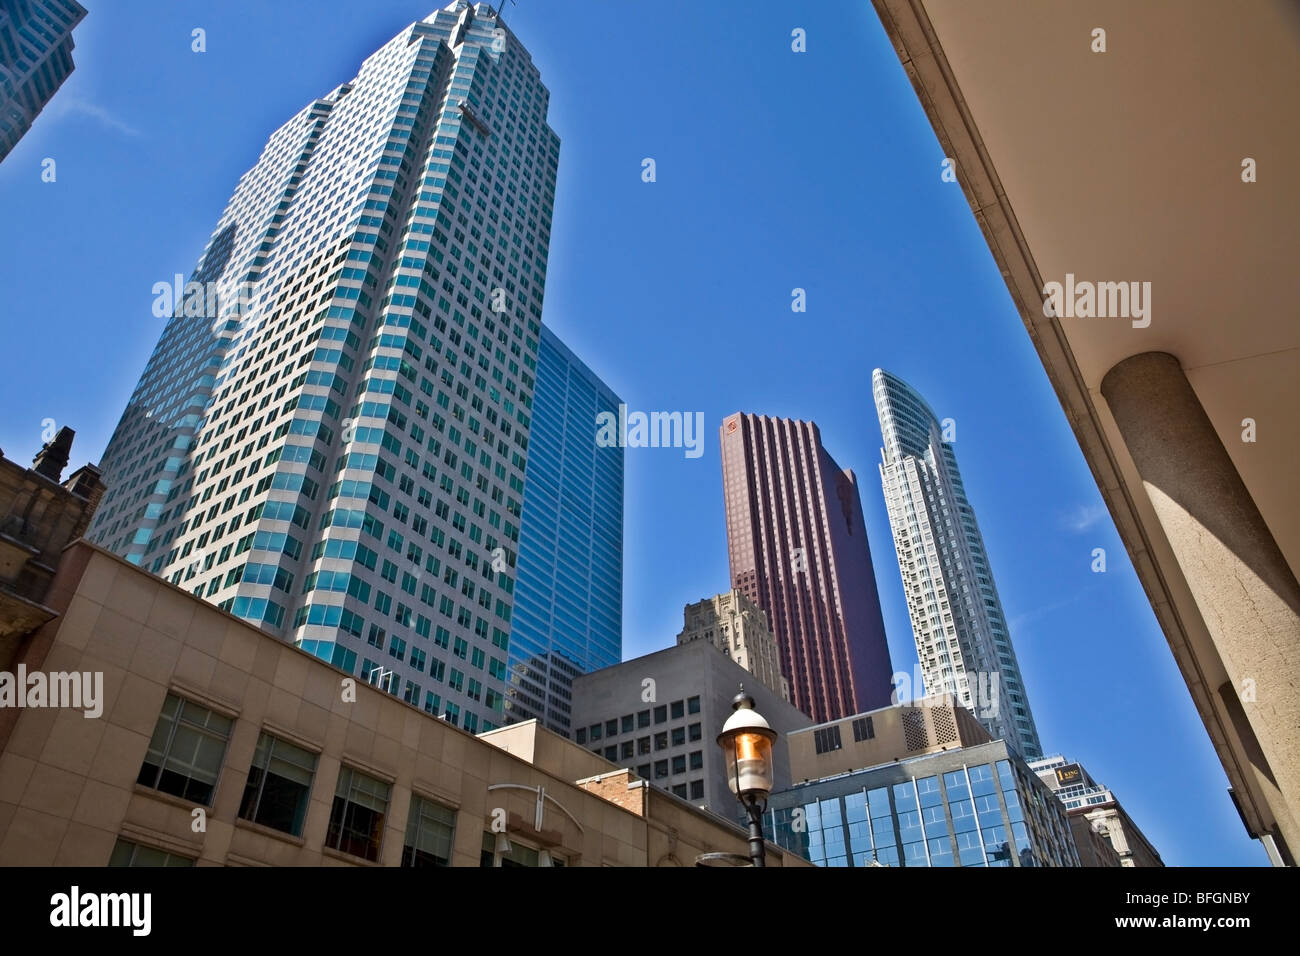 Skyscrapers from Yonge Street, Toronto, Ontario, Canada - Stock Image